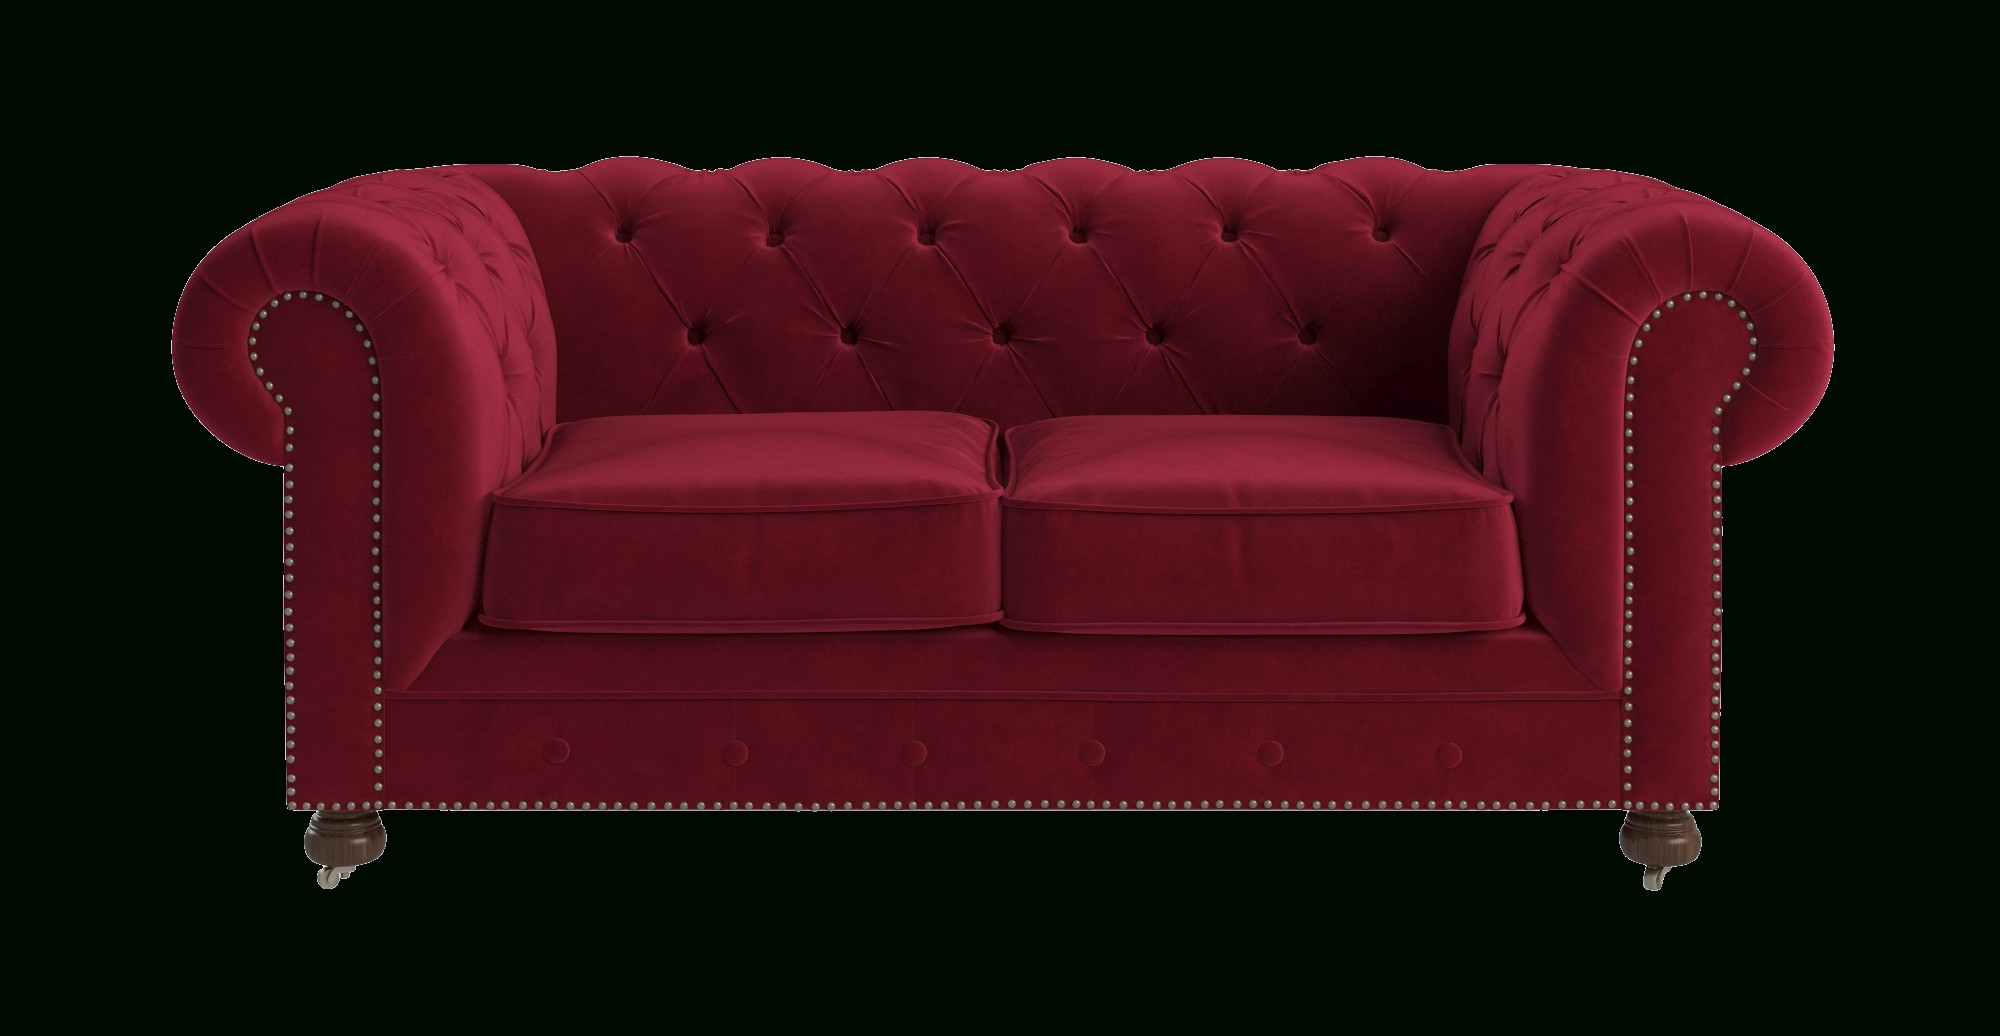 Notting Hill Velvet Chesterfield 3 Seater Sofa in Red Chesterfield Sofas (Image 9 of 15)